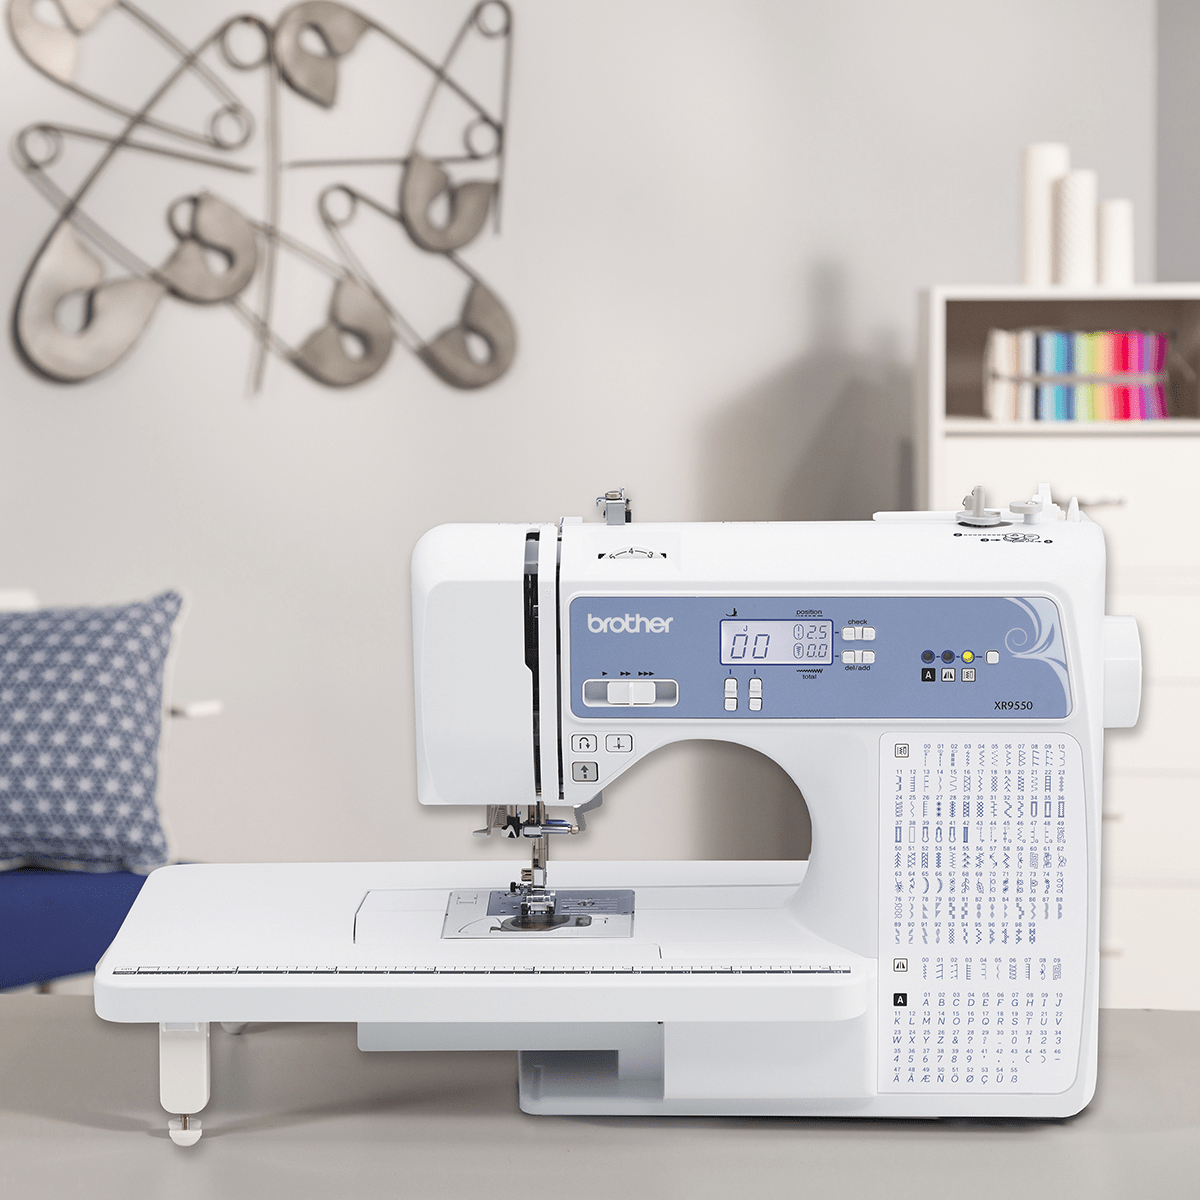 LCD Display 8 Included Presser Feet 165 Built-in Stitches White Wide Table Brother XR9550 Sewing and Quilting Machine Computerized